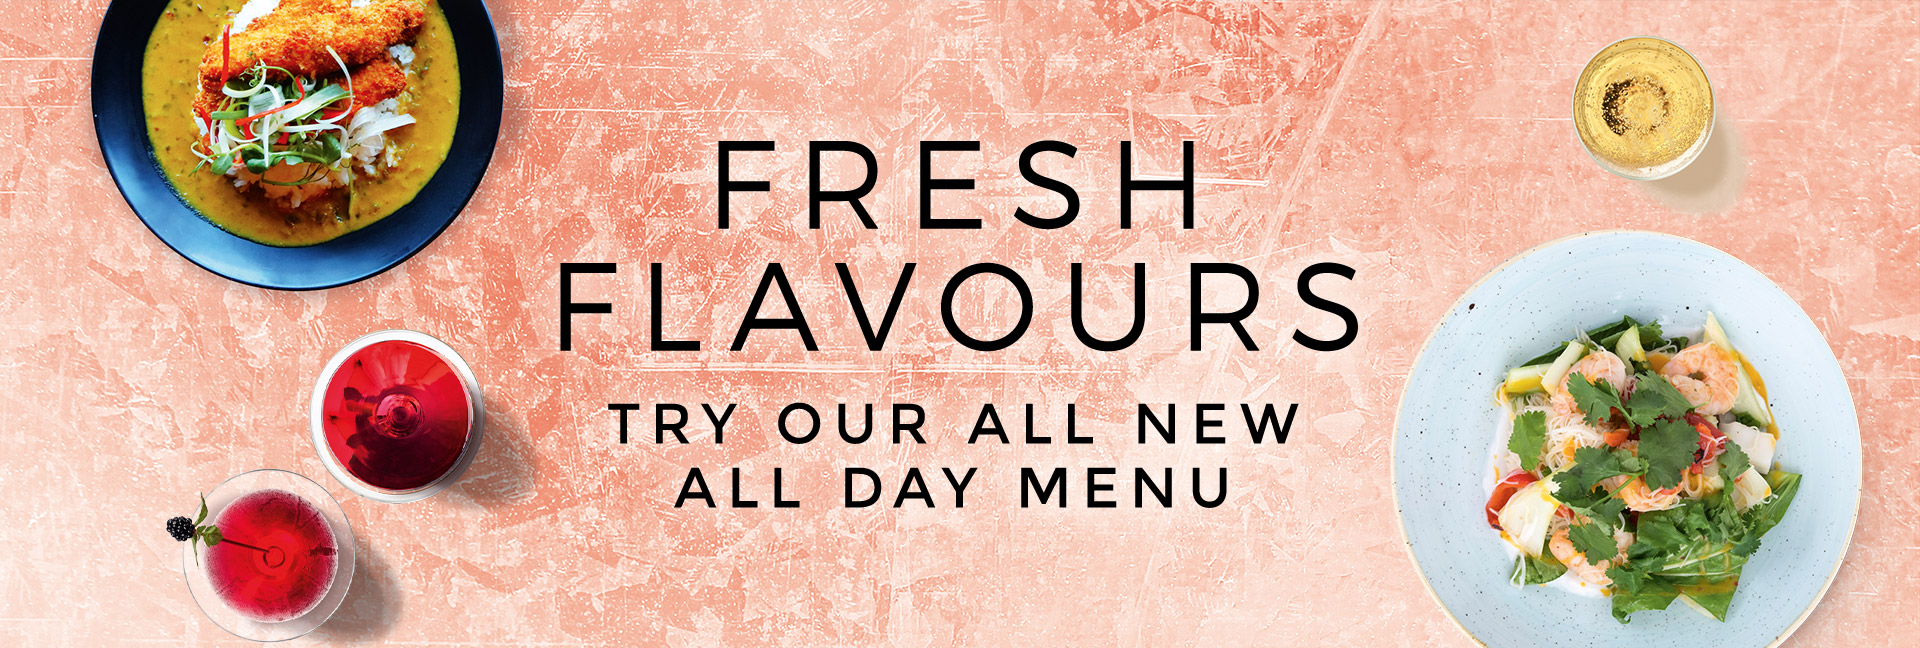 New Menus at All Bar One Brindleyplace